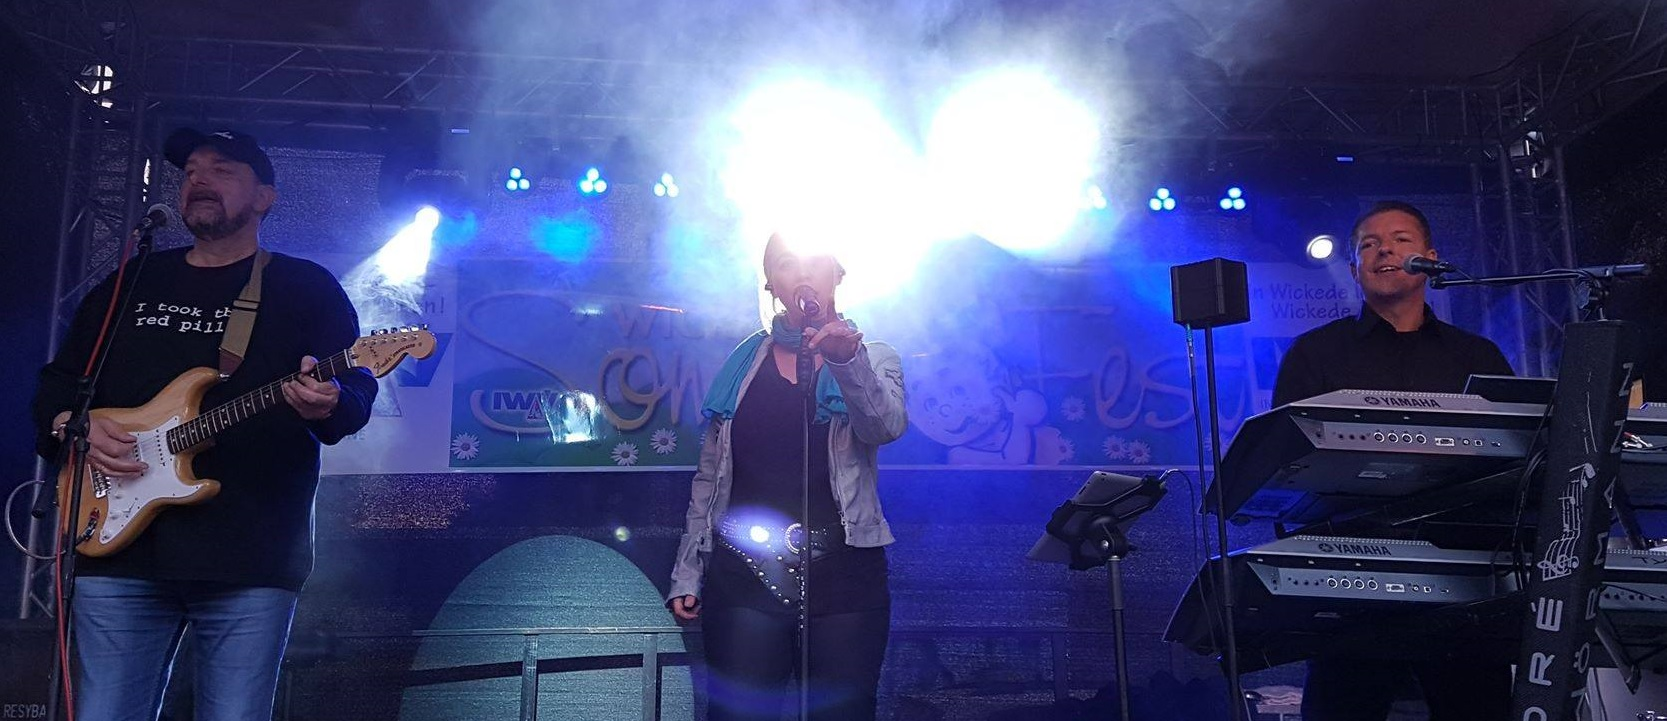 Partyband Hits4yoU - Coverband Showband Schlagerband Tanzband buchen